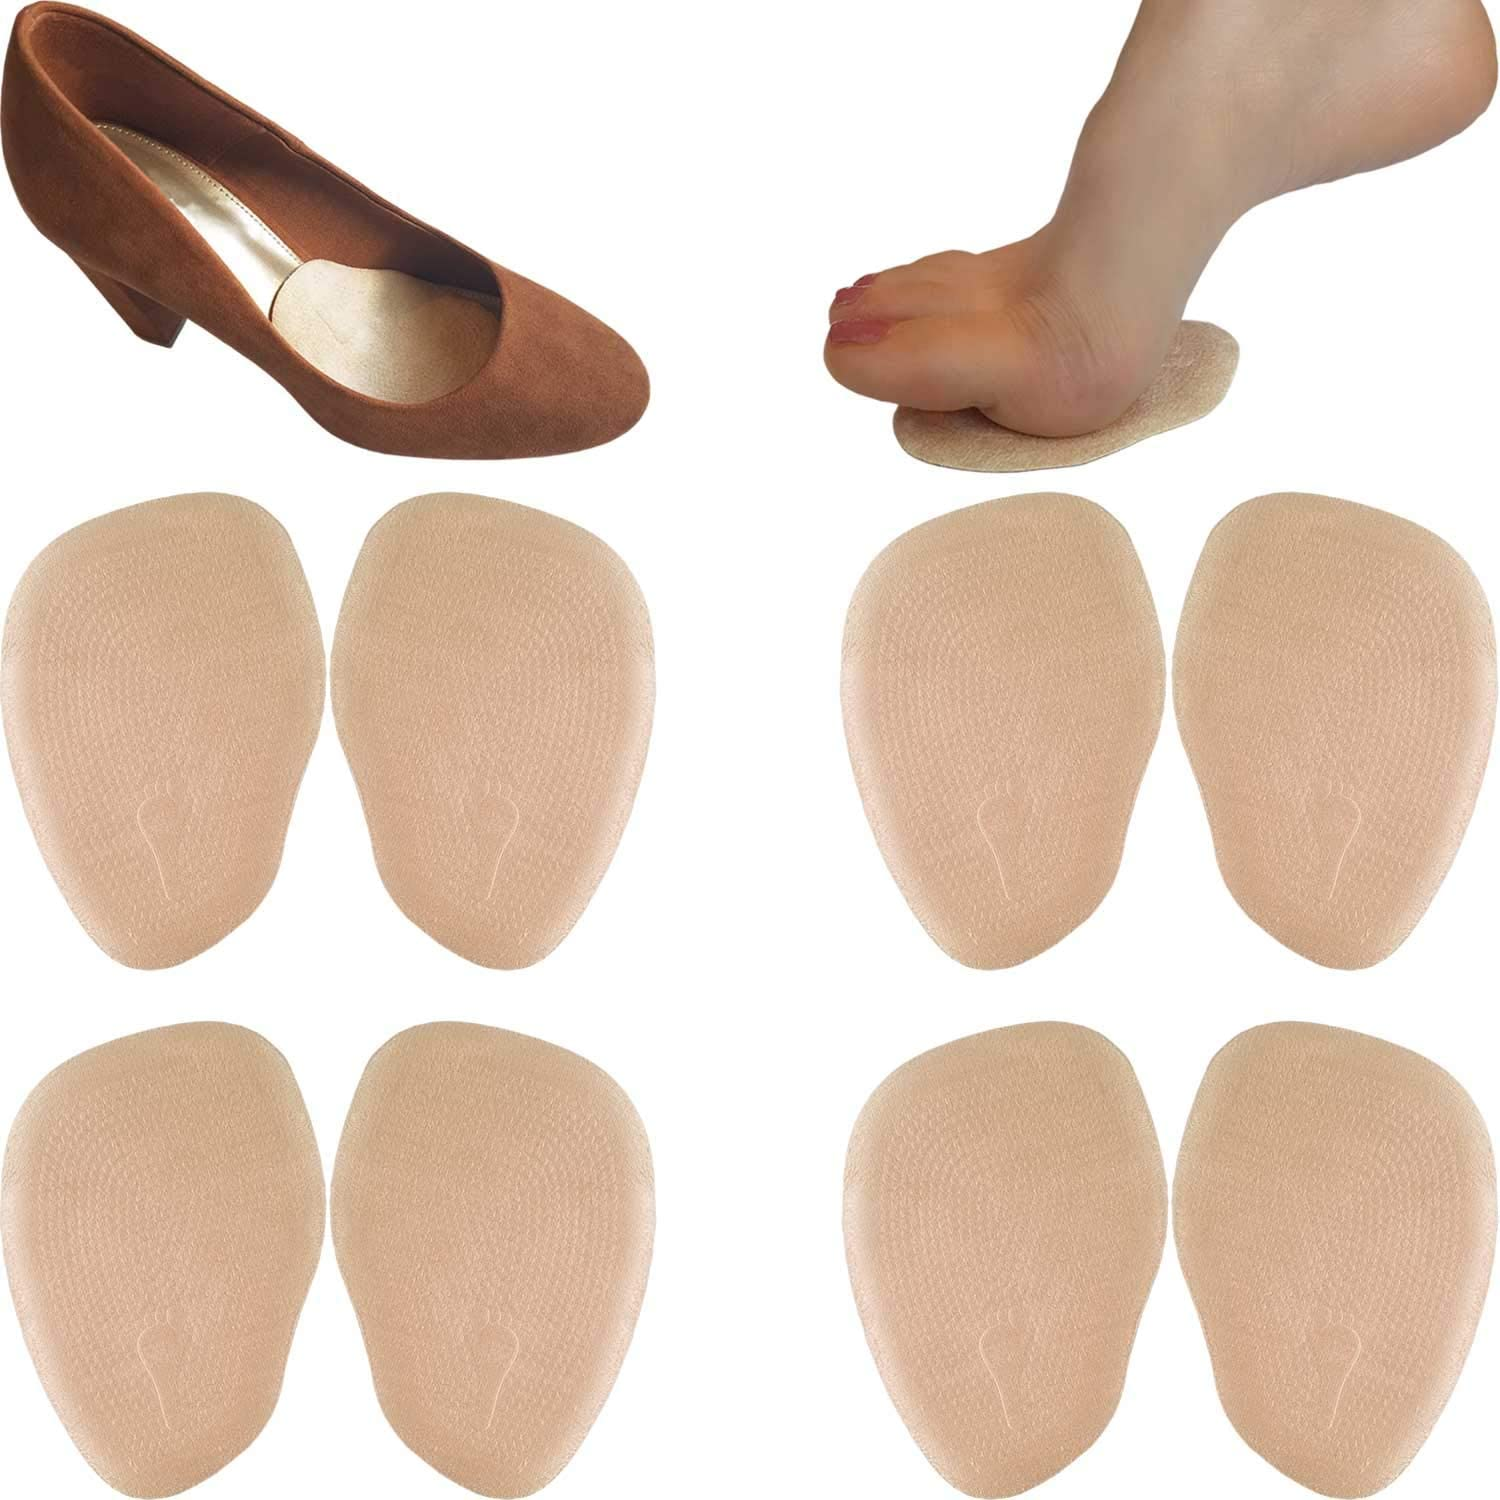 Chiroplax Outlet ☆ Free Shipping High Heel Cushion Inserts Pads 4 Ball Suede of Pairs low-pricing